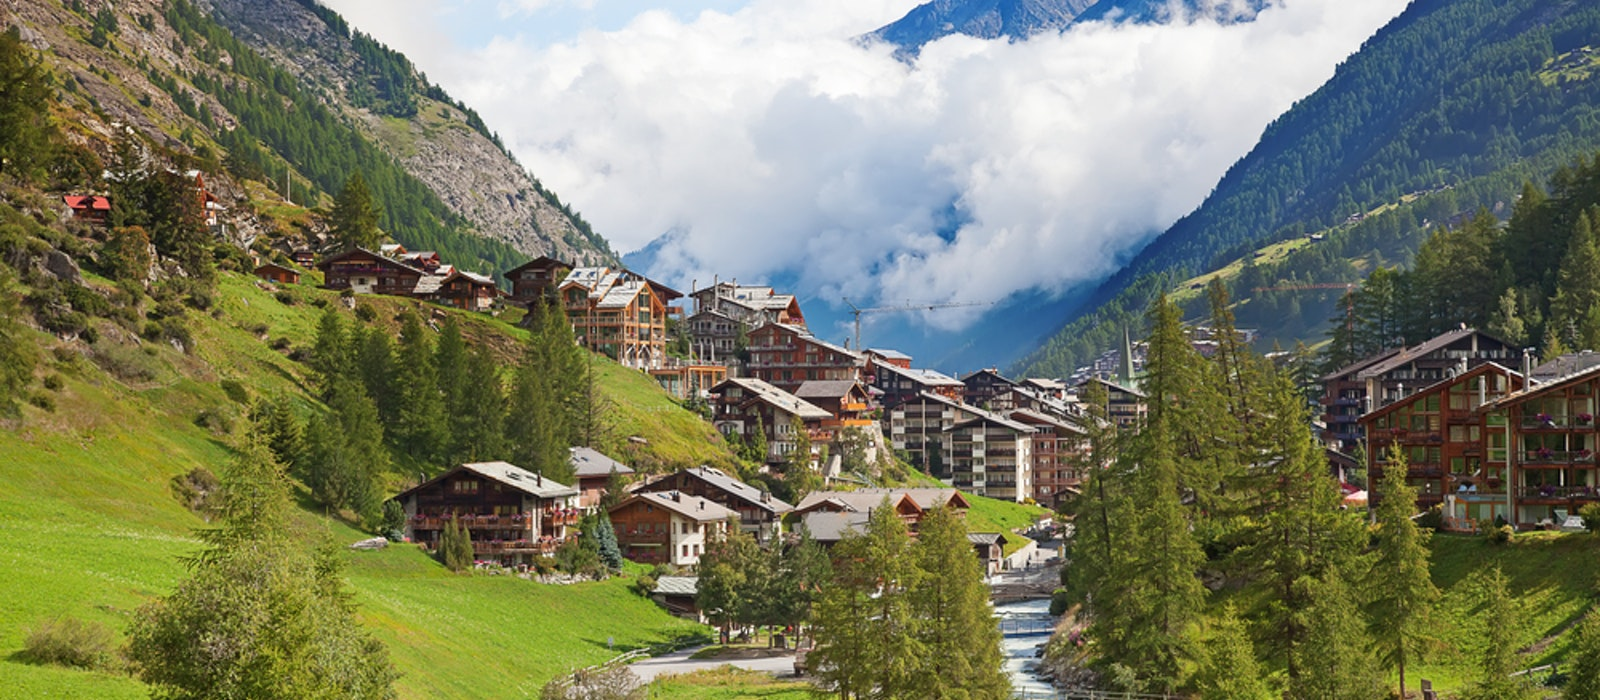 If you want to go to the Swiss Alps, summer is the more affordable season.